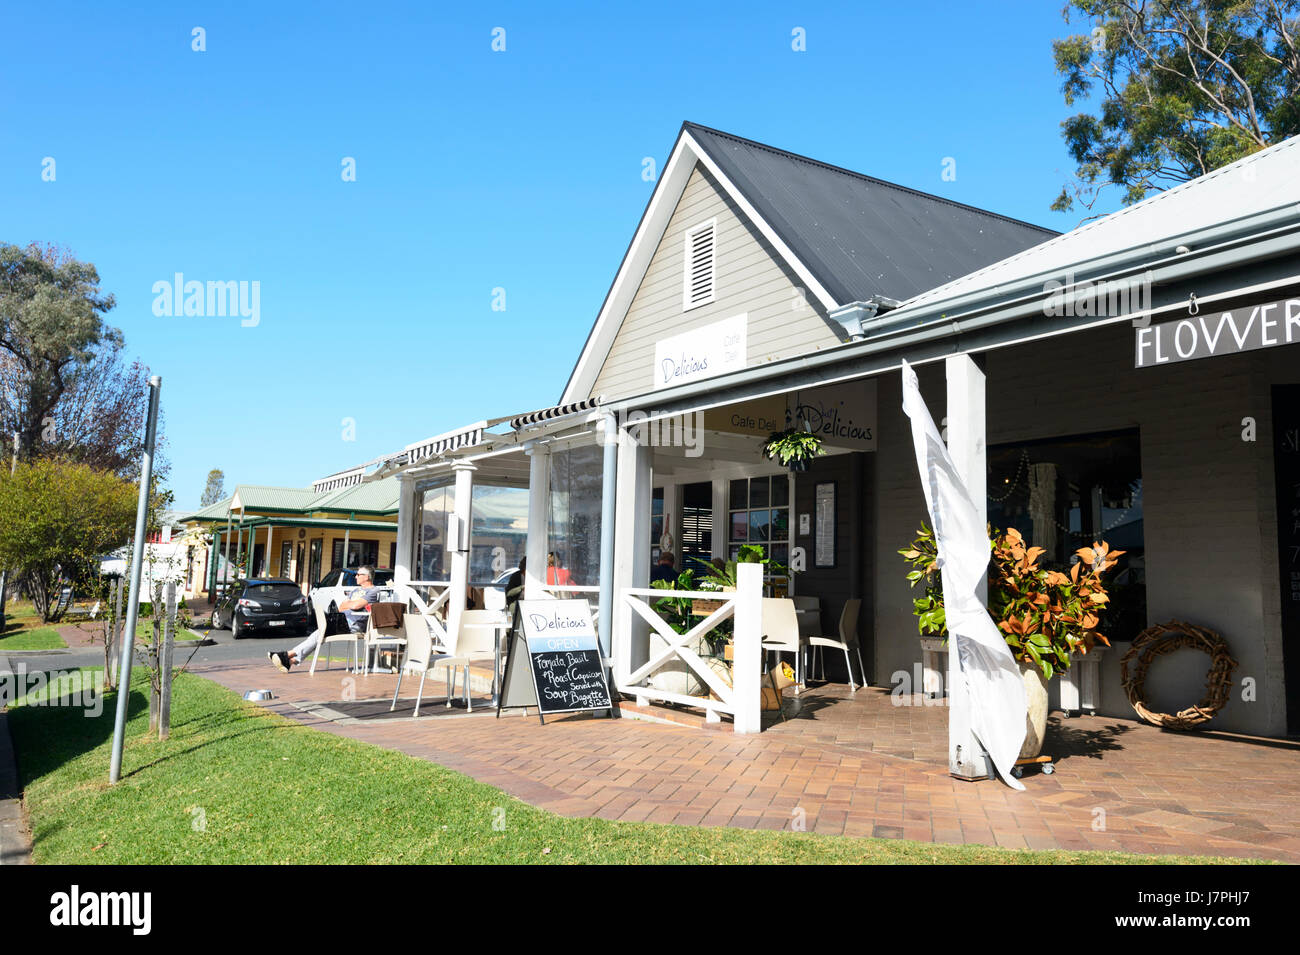 Delicious Coffee Shop & Deli, Berry, New South Wales, NSW, Australia - Stock Image